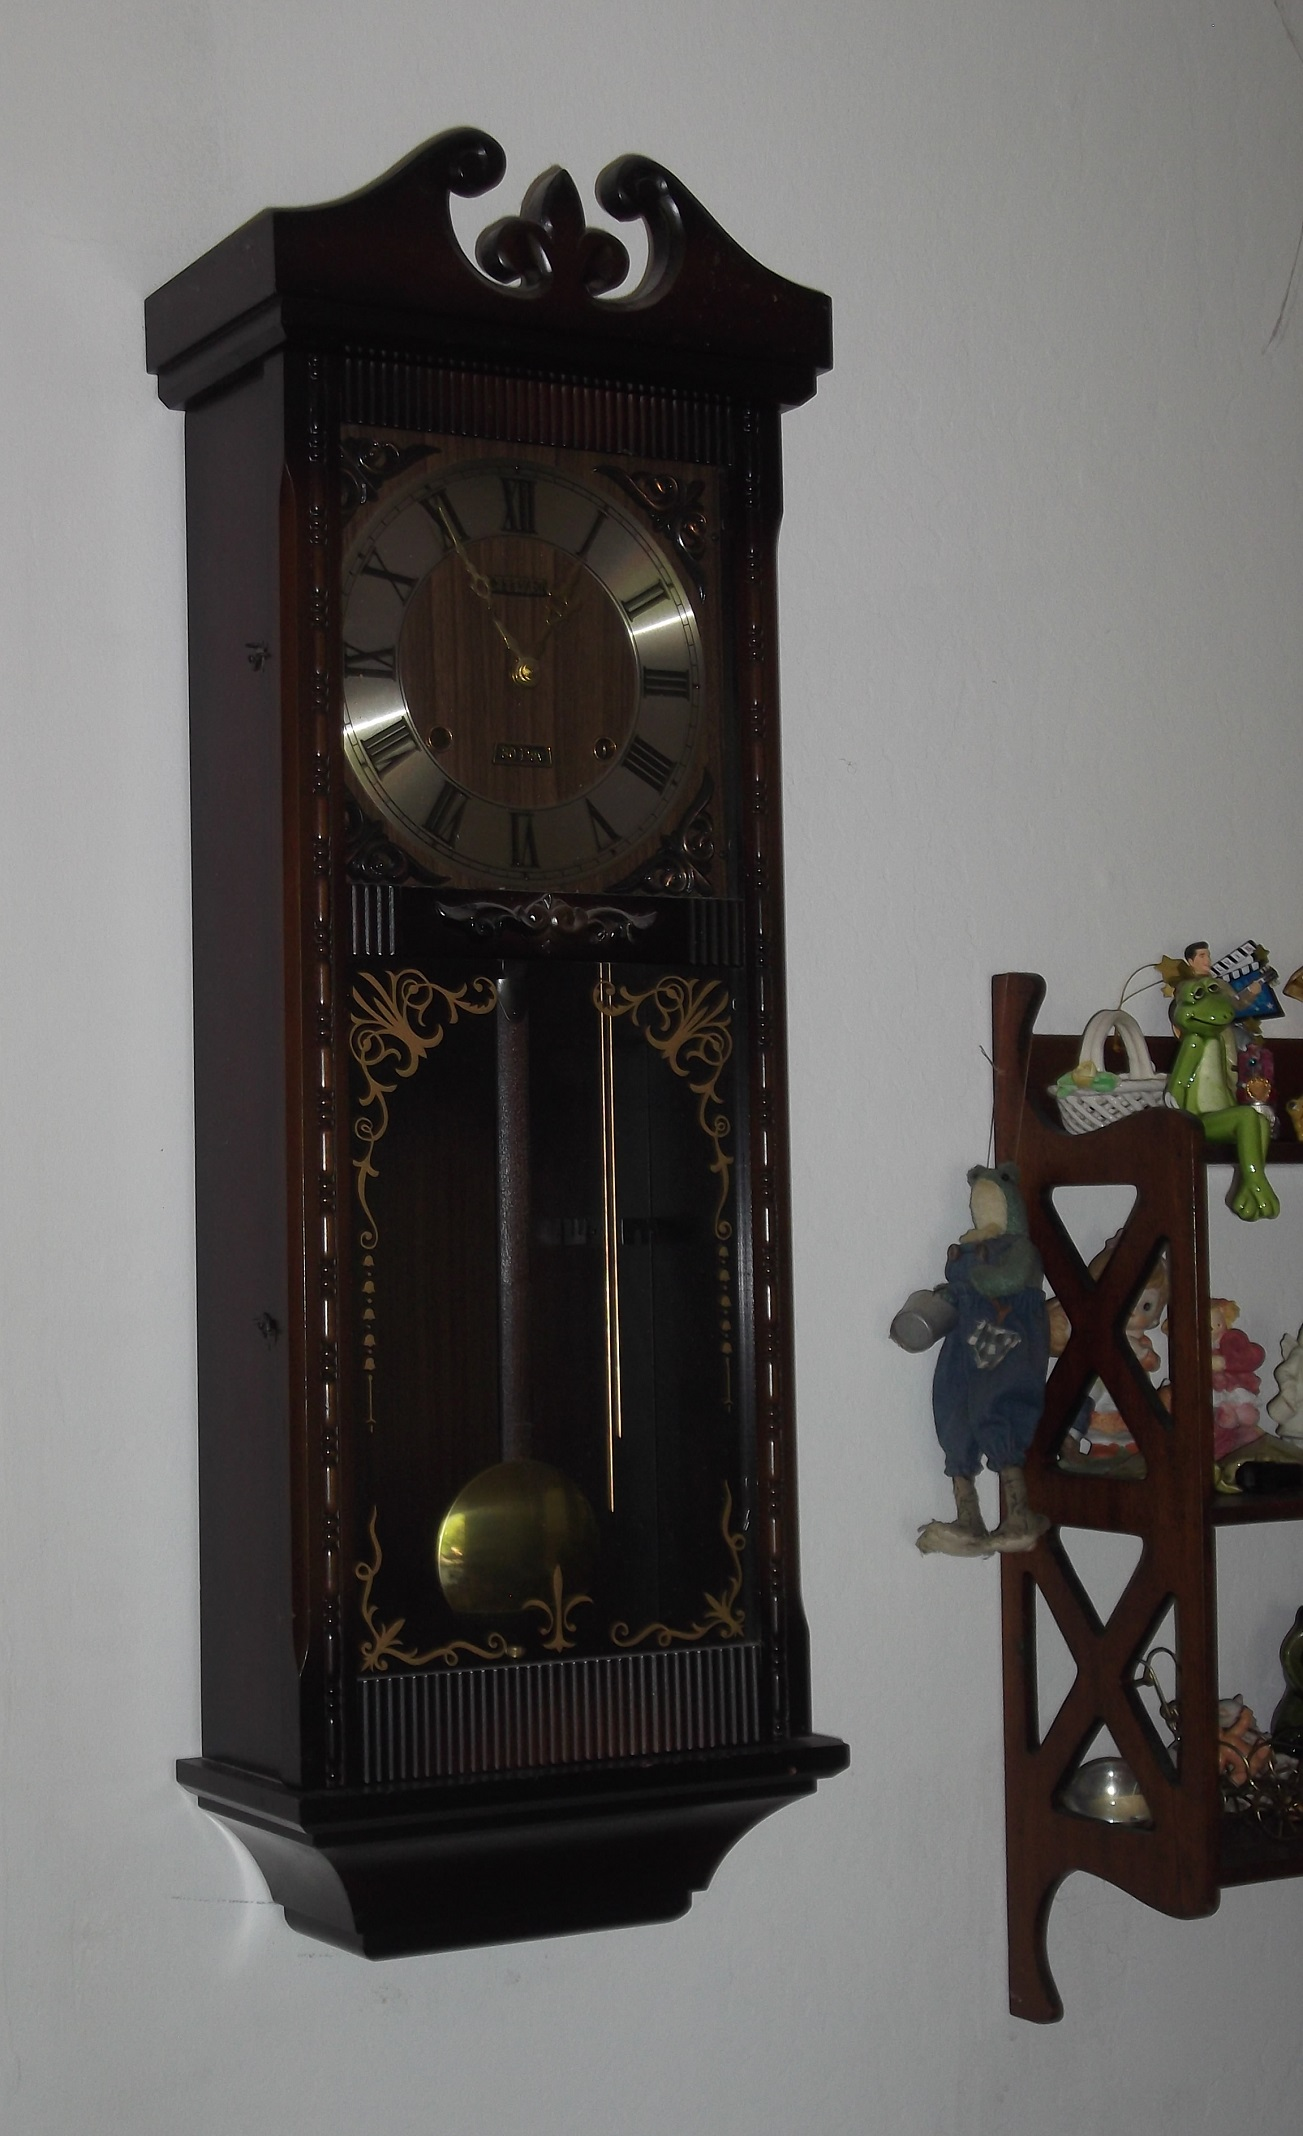 Photo I took of my grandmother's clock